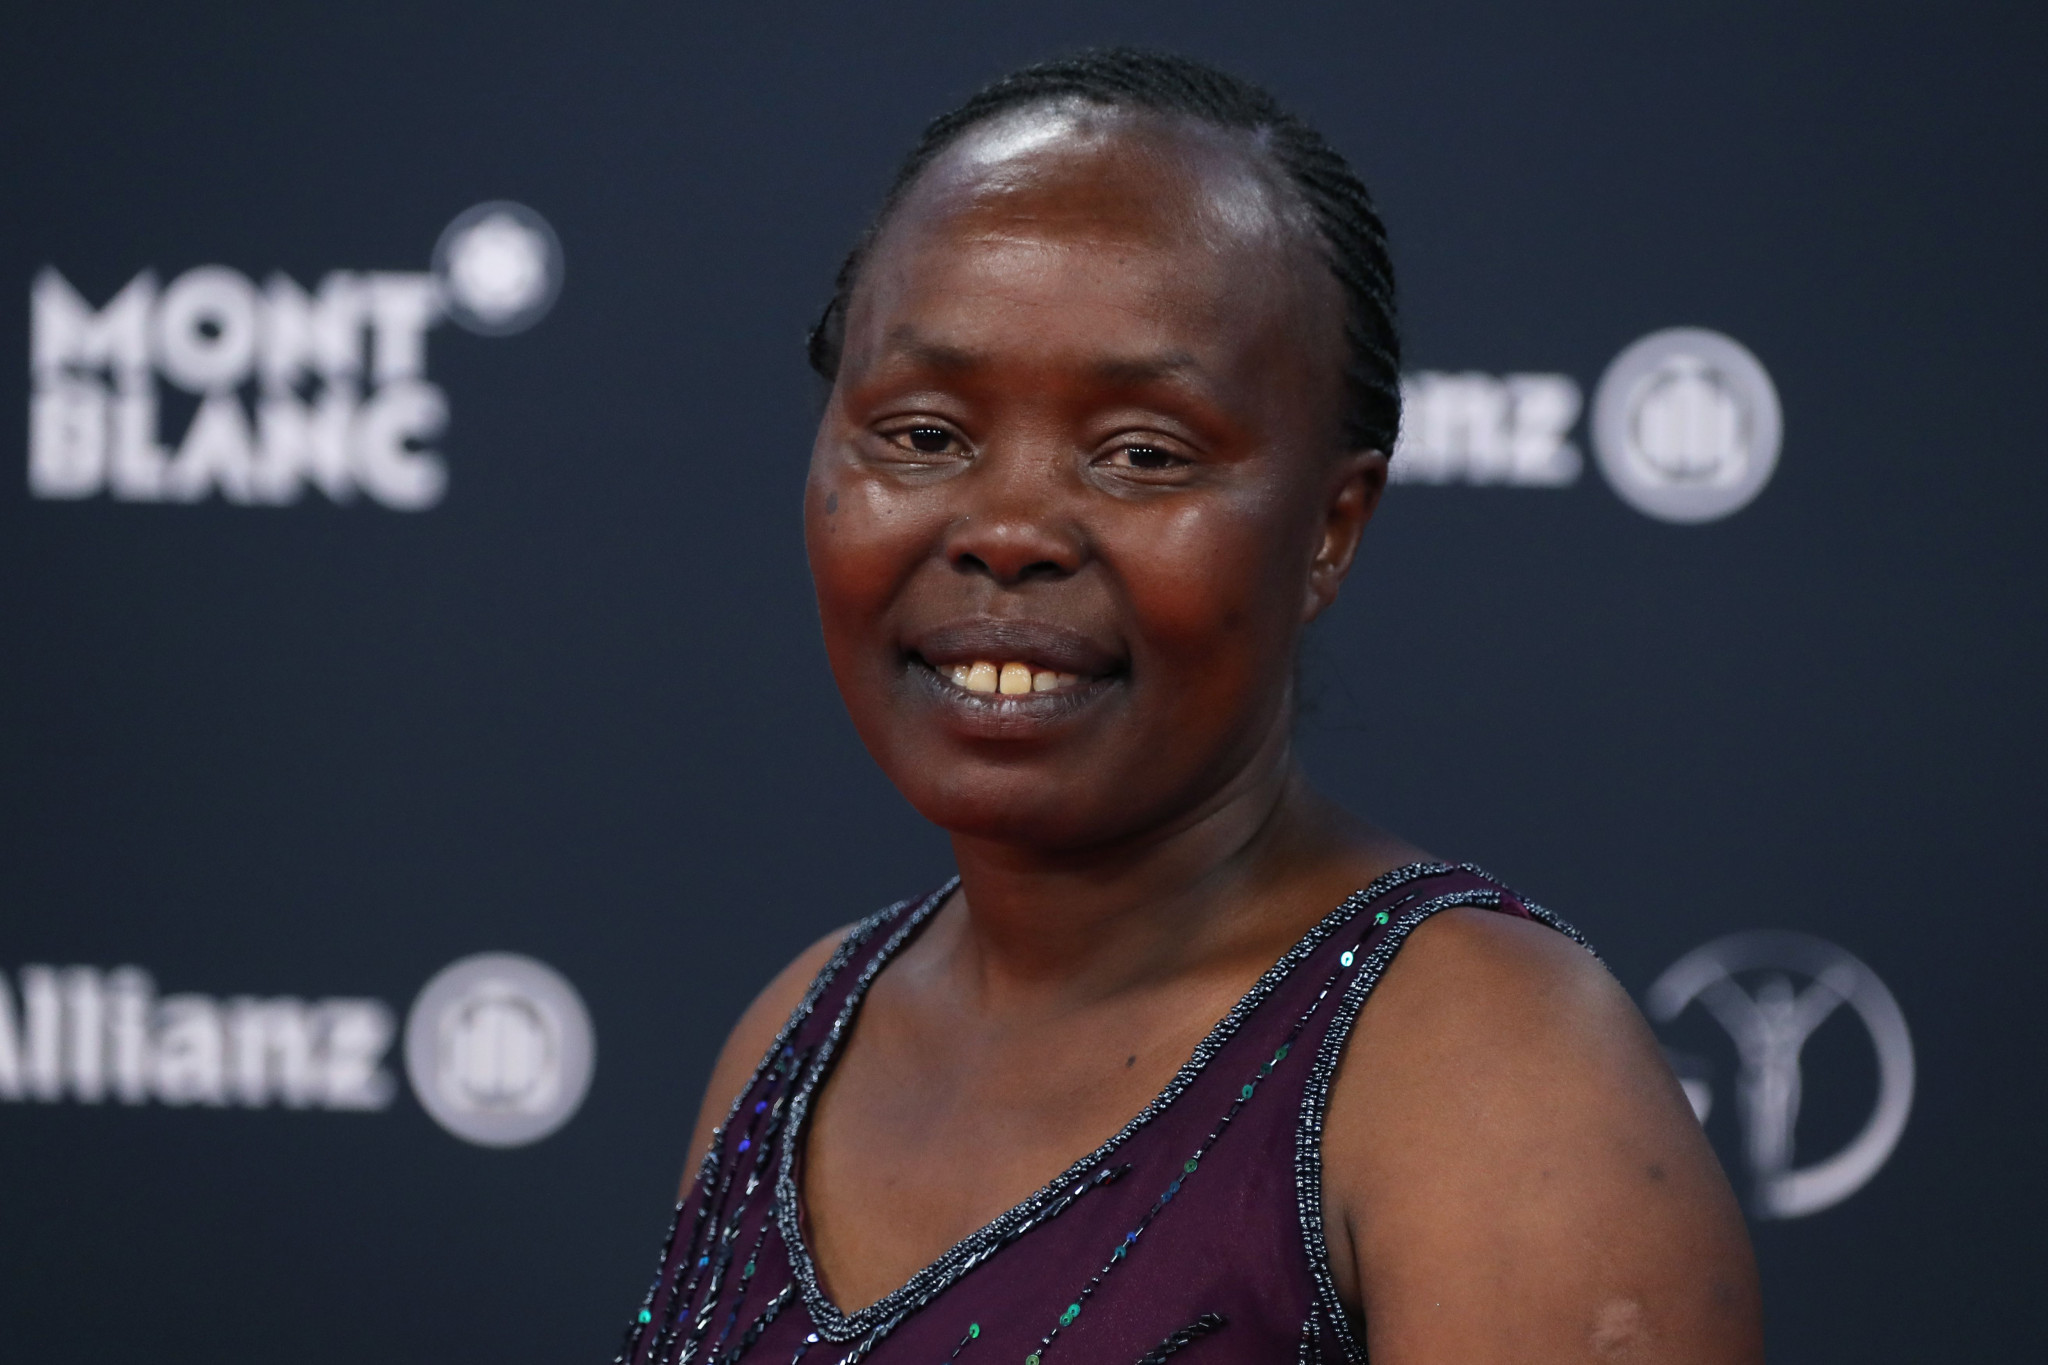 Former marathon world record holder Tegla Loroupe has been working to build sporting facilities in Kenya ©Getty Images